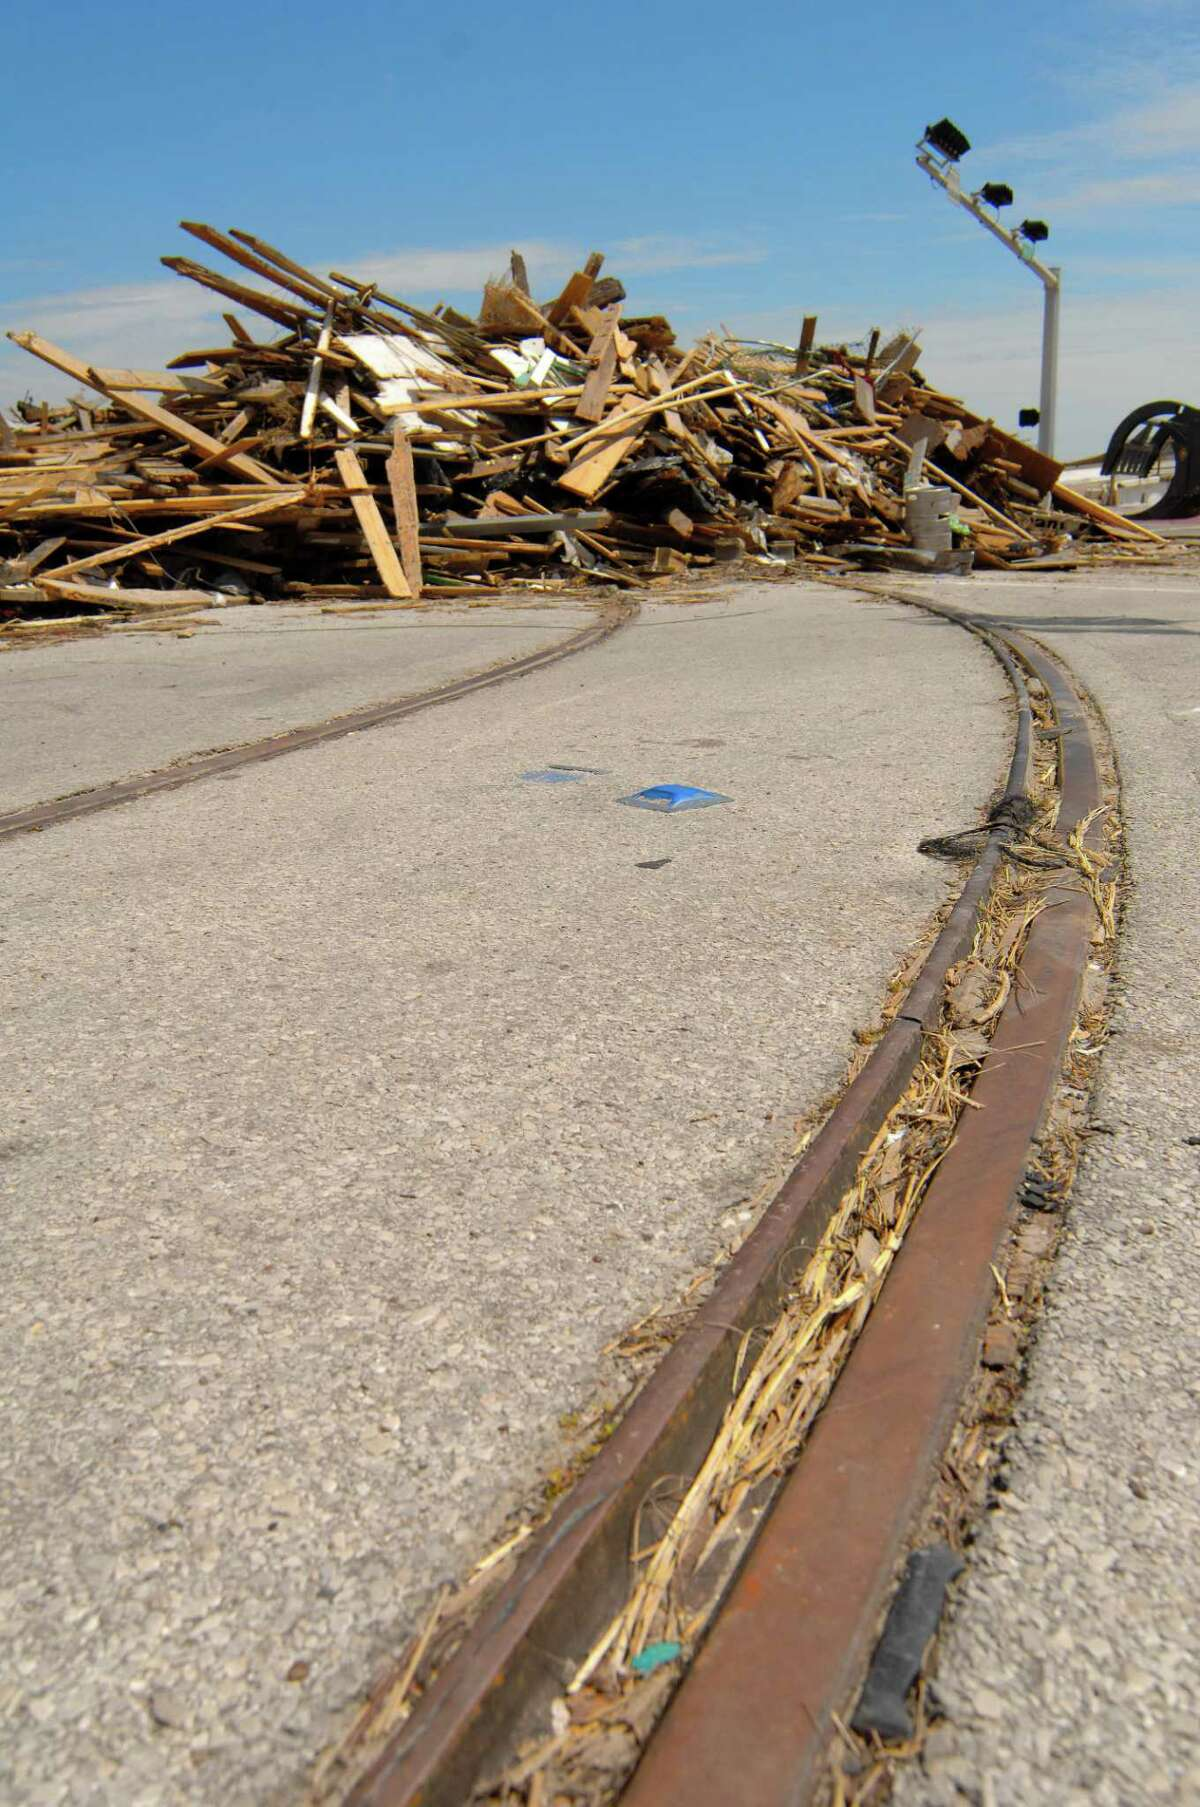 File photo from 2008 shows Galveston trolley tracks leading to the debris of the Balinese Room caused by Hurricane Ike.